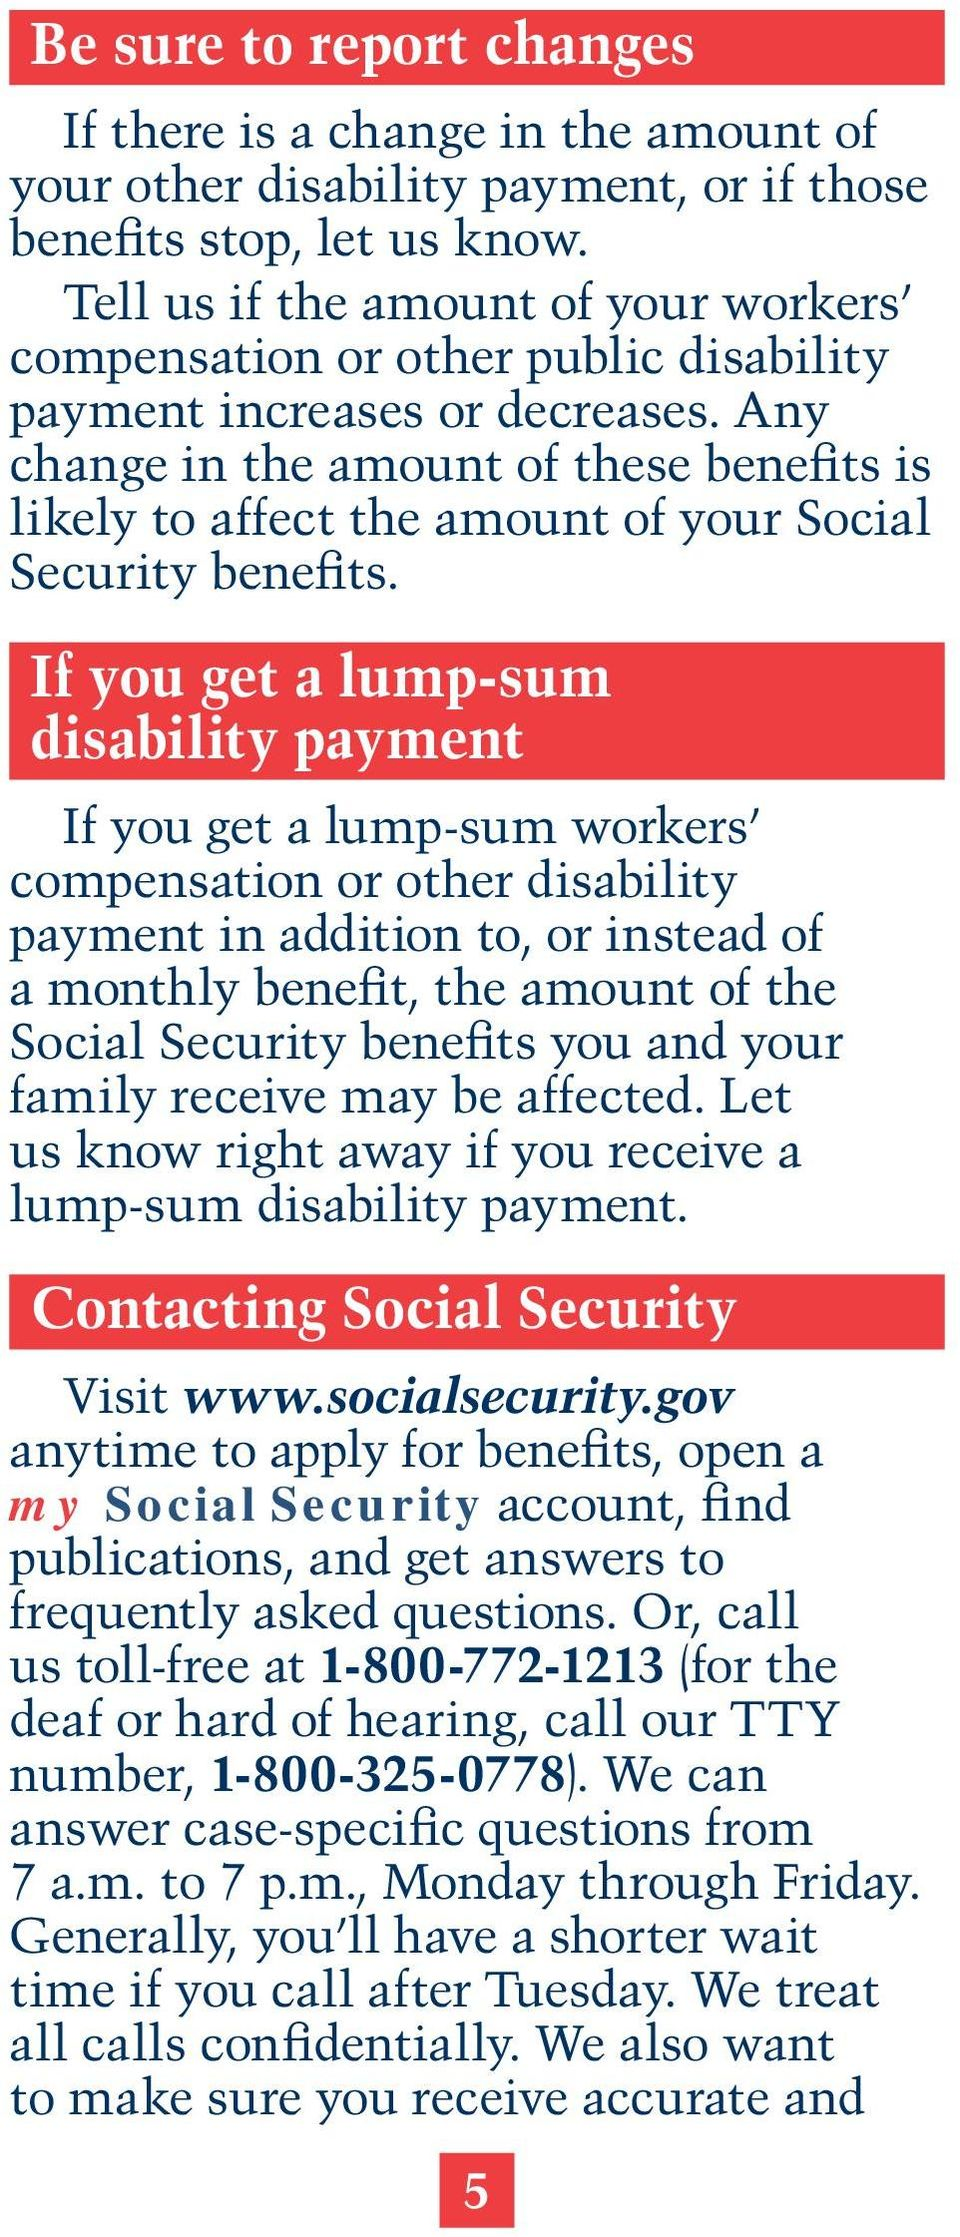 Any change in the amount of these benefits is likely to affect the amount of your Social Security benefits.